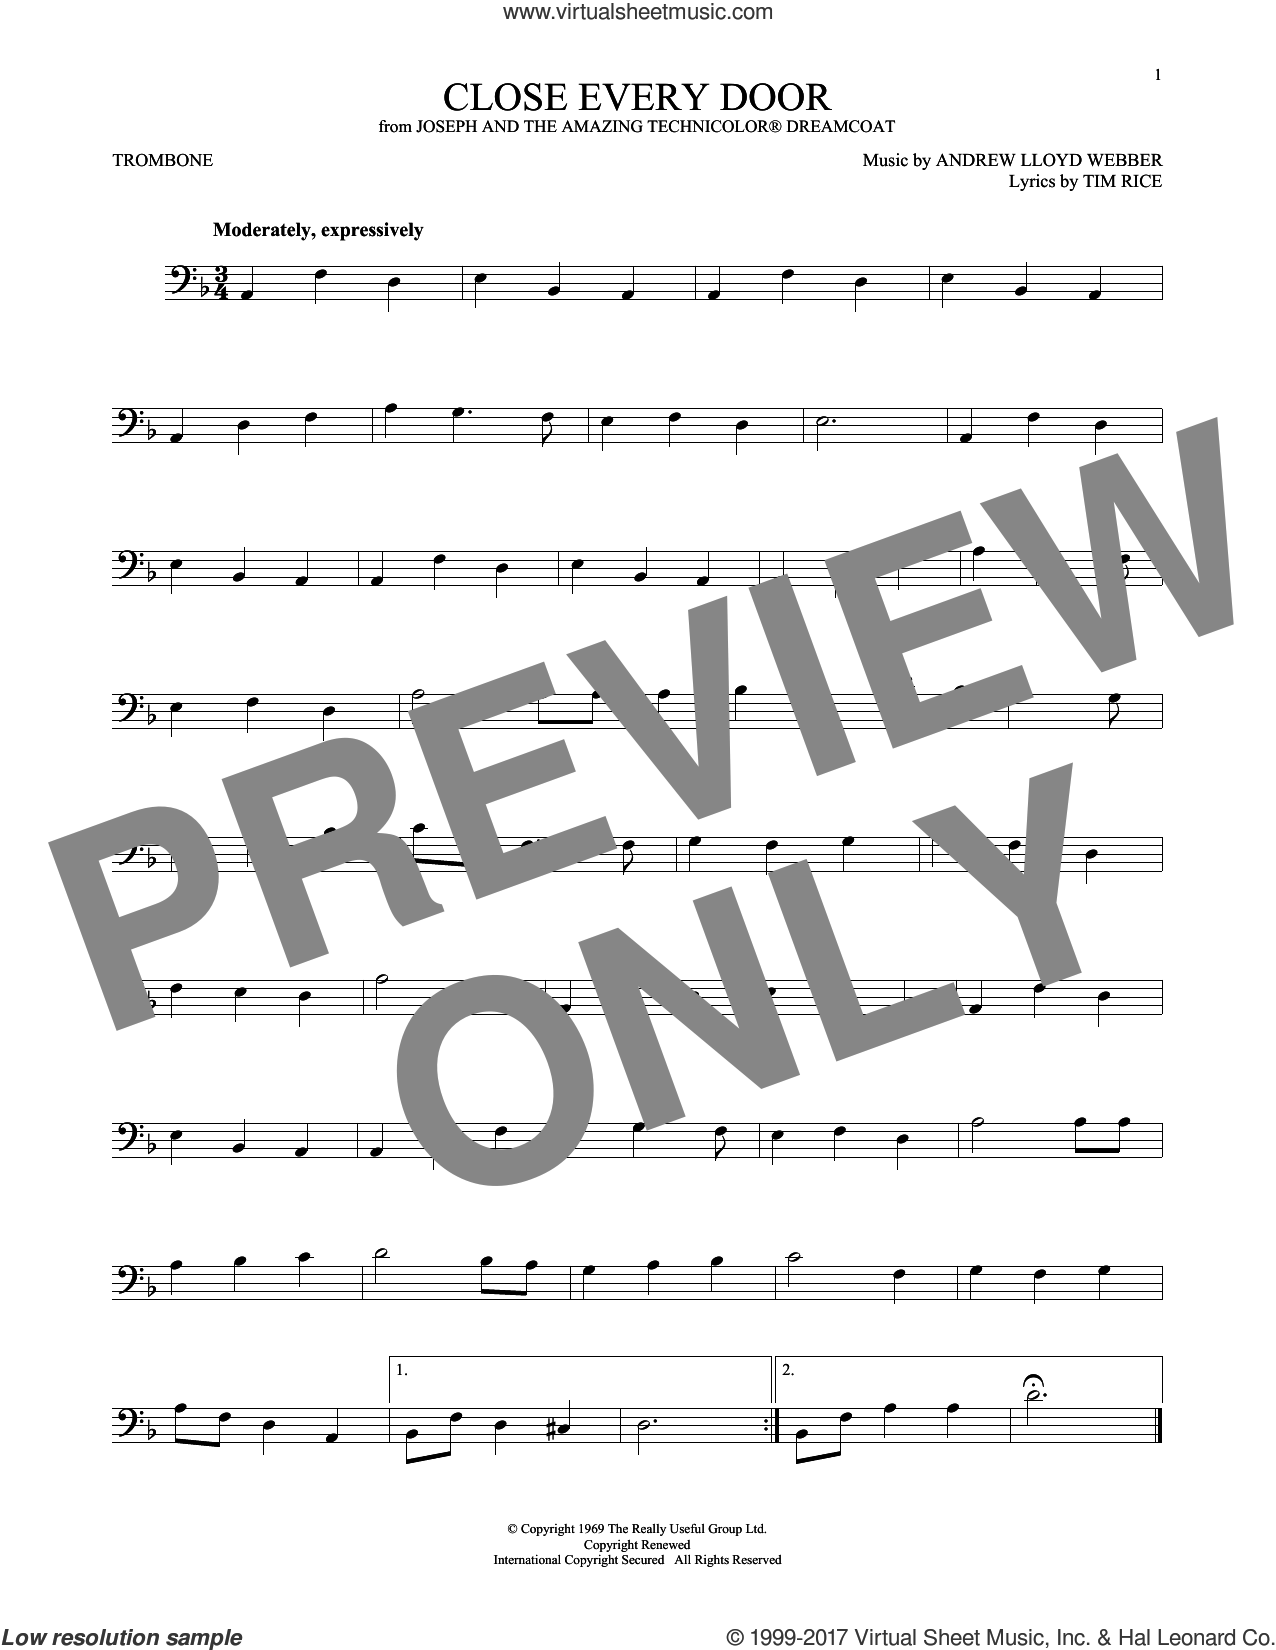 Close Every Door sheet music for trombone solo by Andrew Lloyd Webber and Tim Rice, intermediate